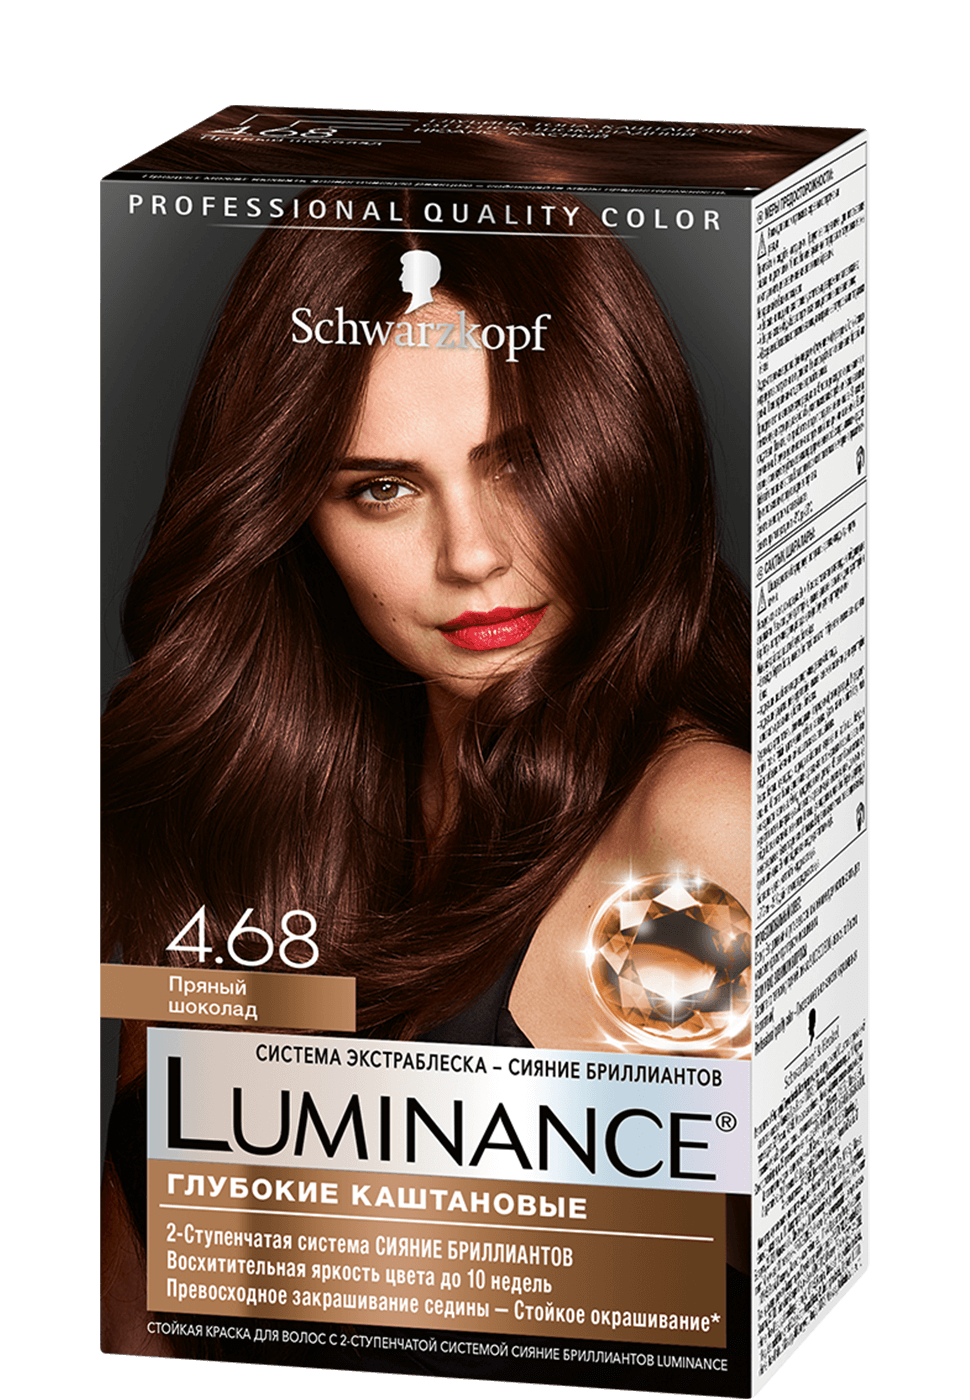 luminance_ru_deep_brunettes_4_68_970x1400